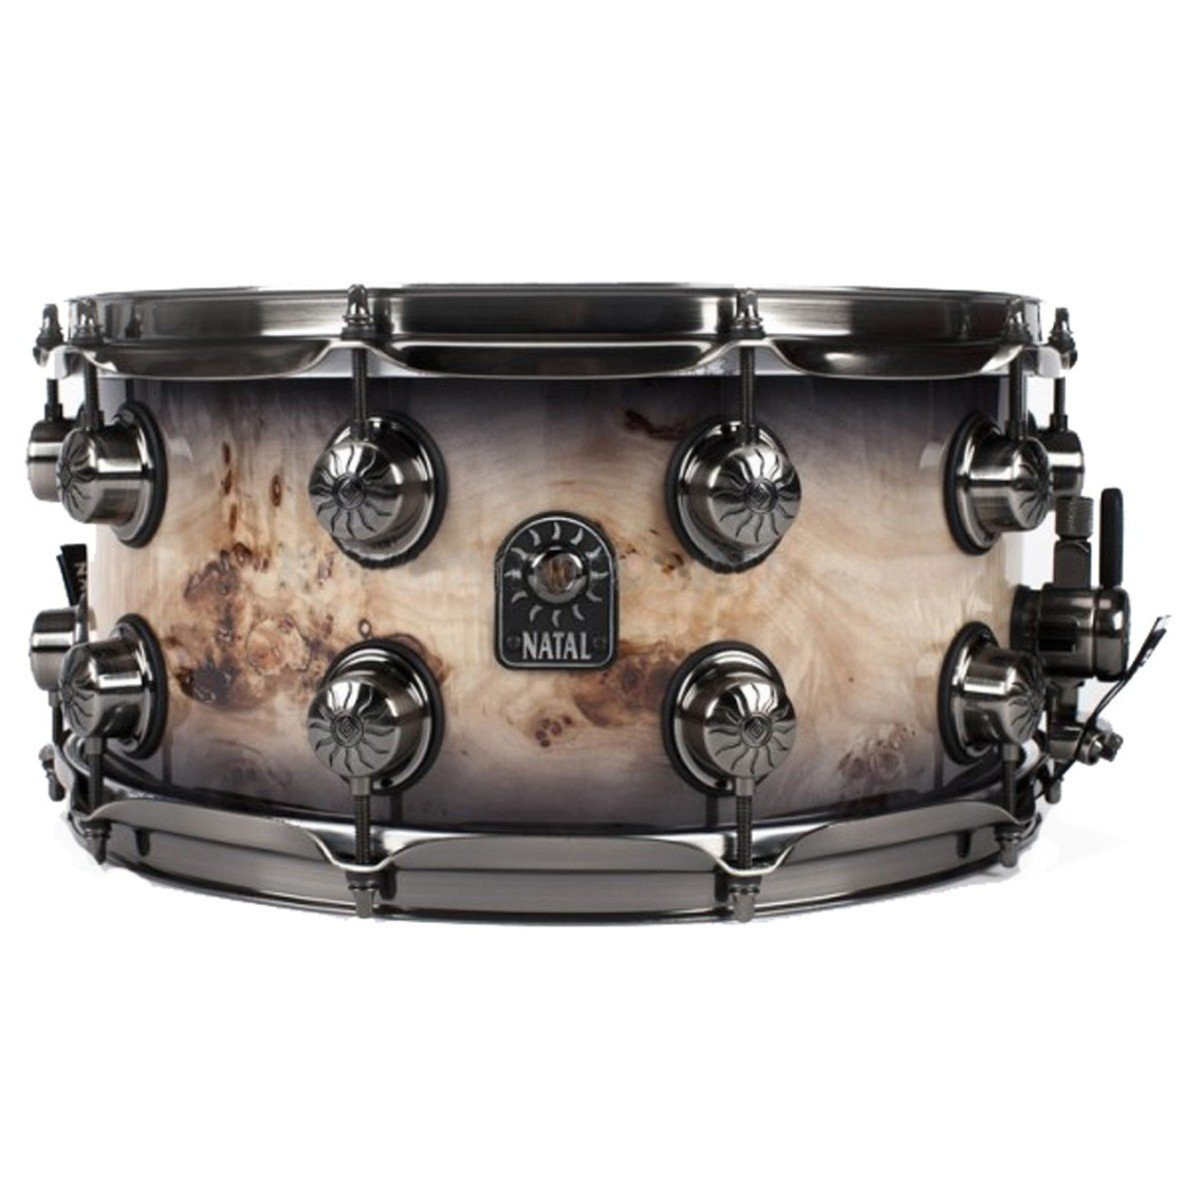 Natal Maple 13x7 Mappa Burl Snare Black Smoked Gloss Snare Drum Snare Drums